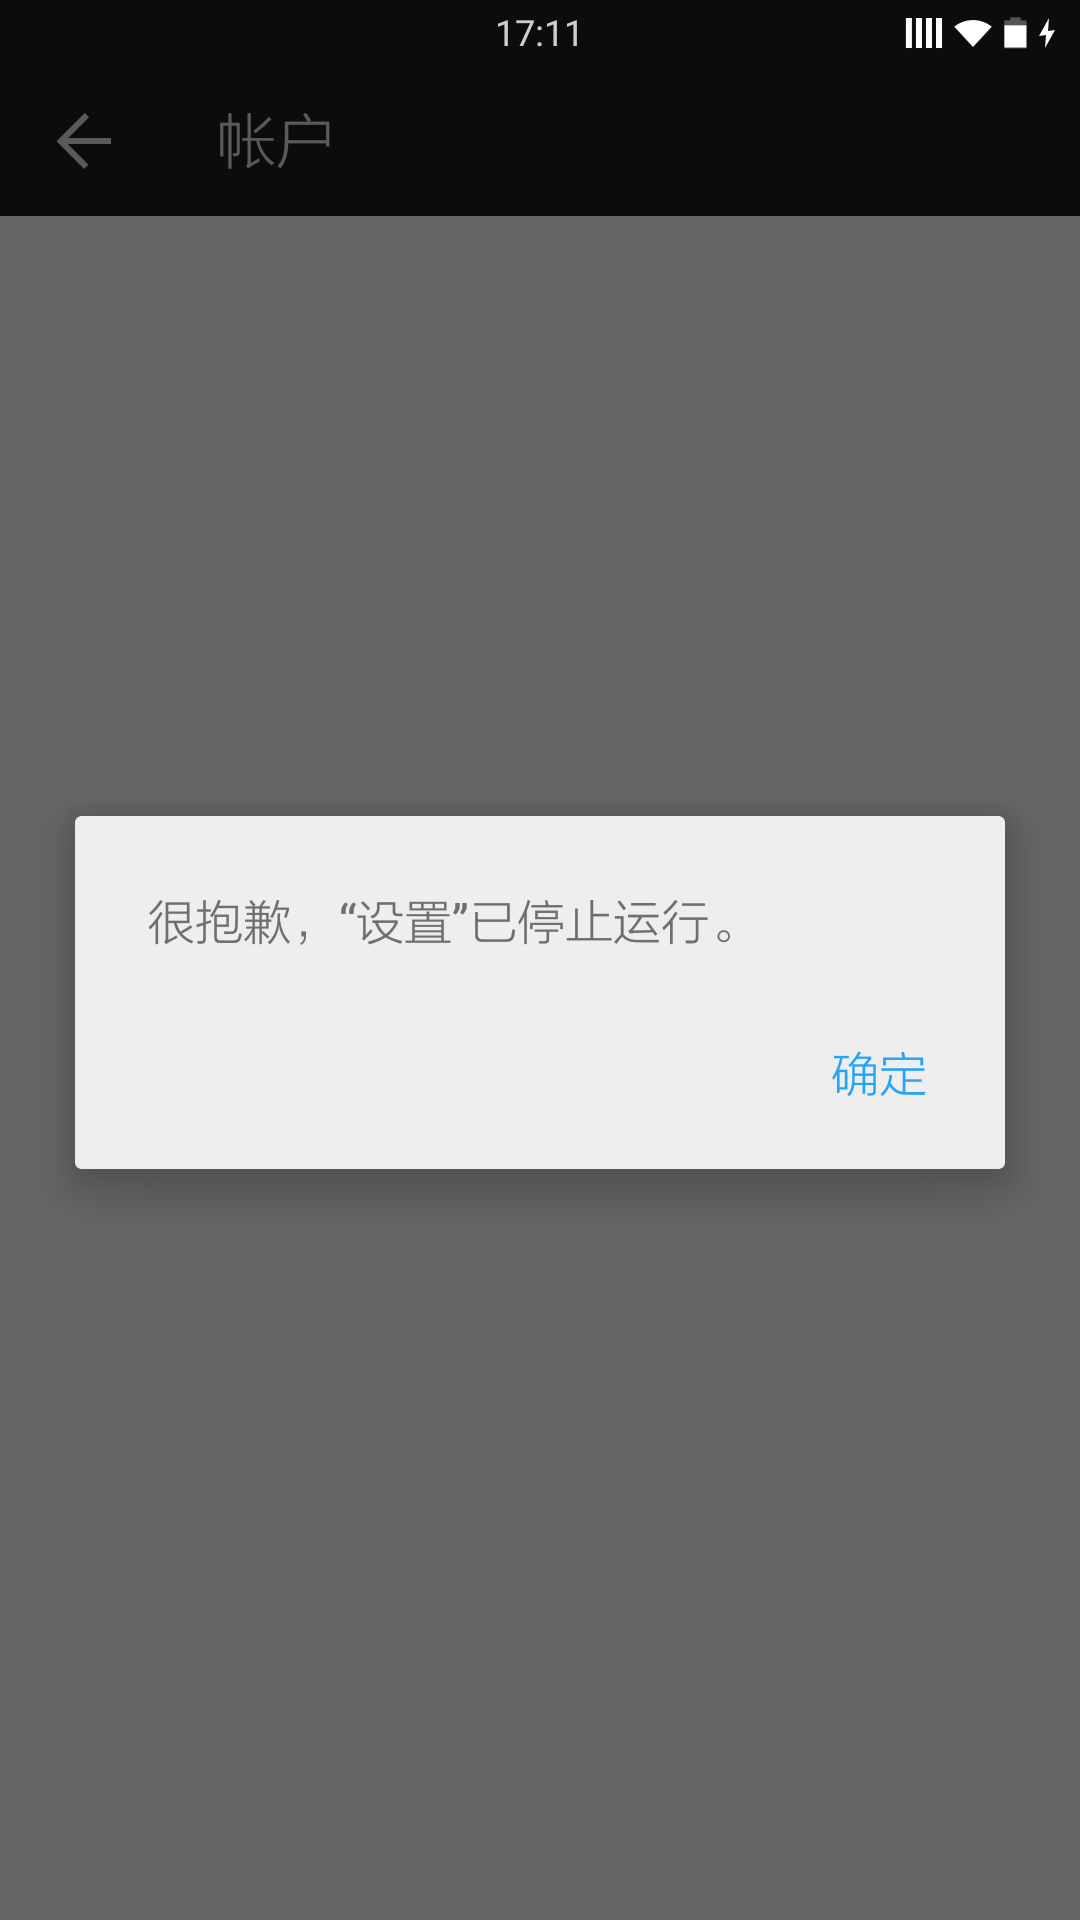 Screenshot_2015-07-08-17-11-47.png